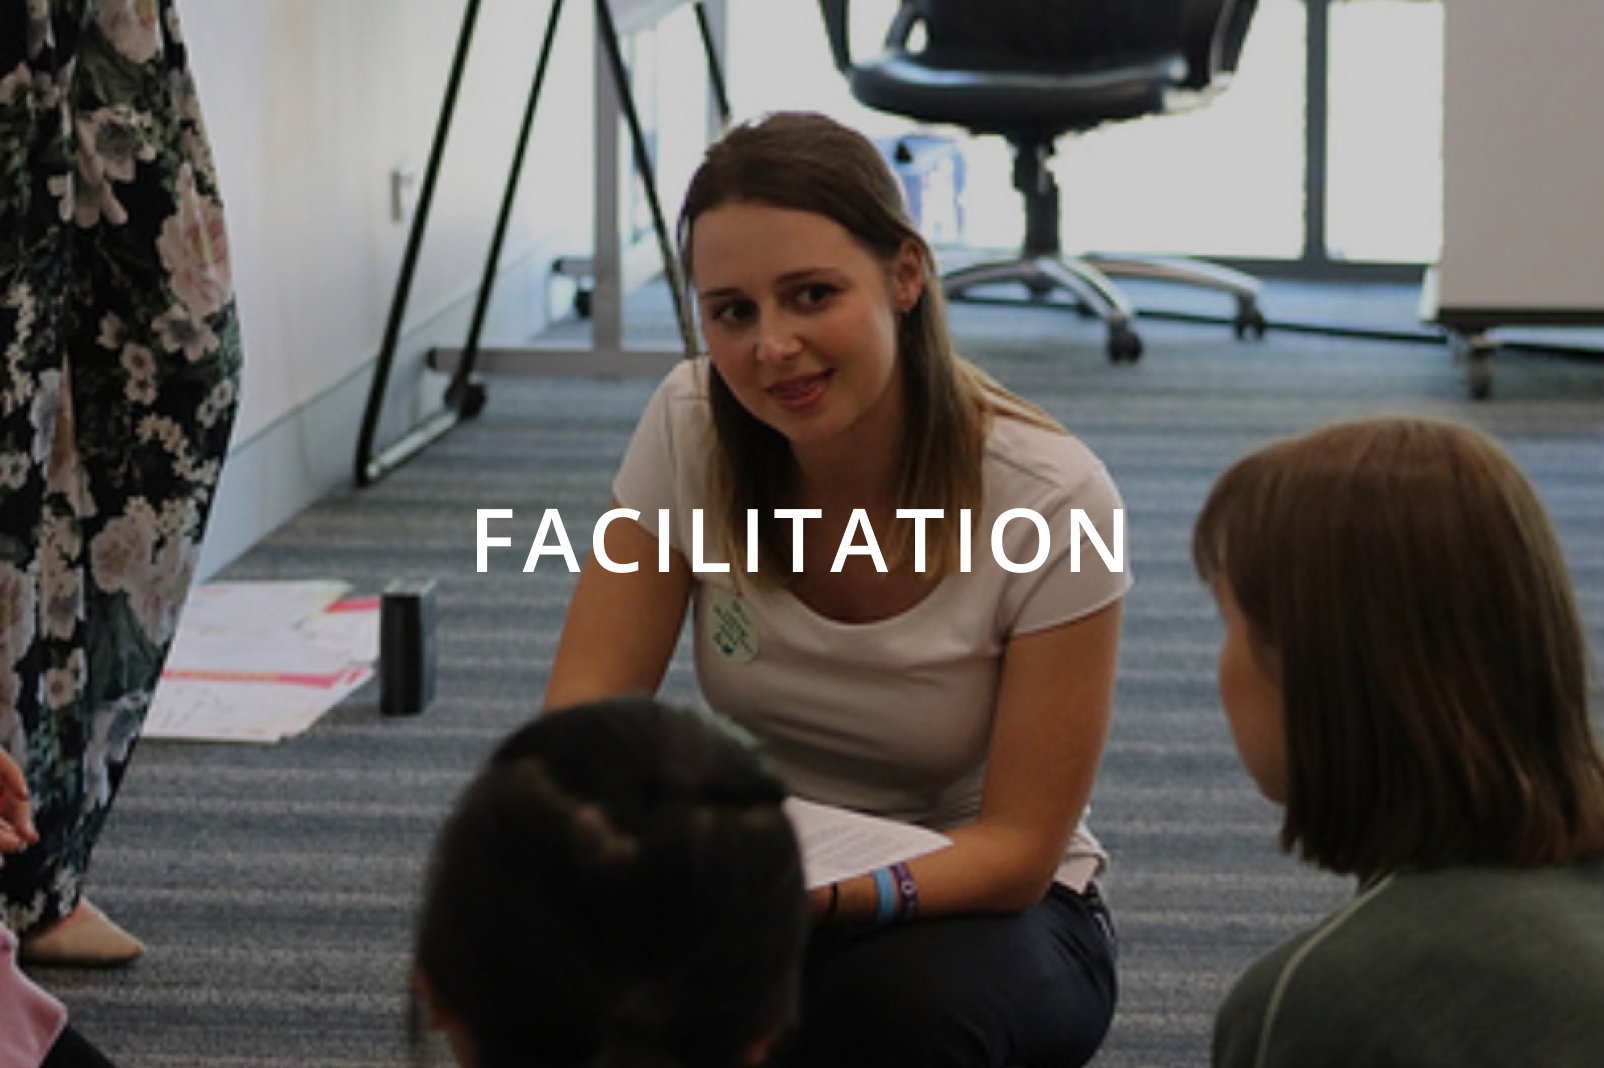 Ashleigh kneeling speaking to someone with facilitation overlay